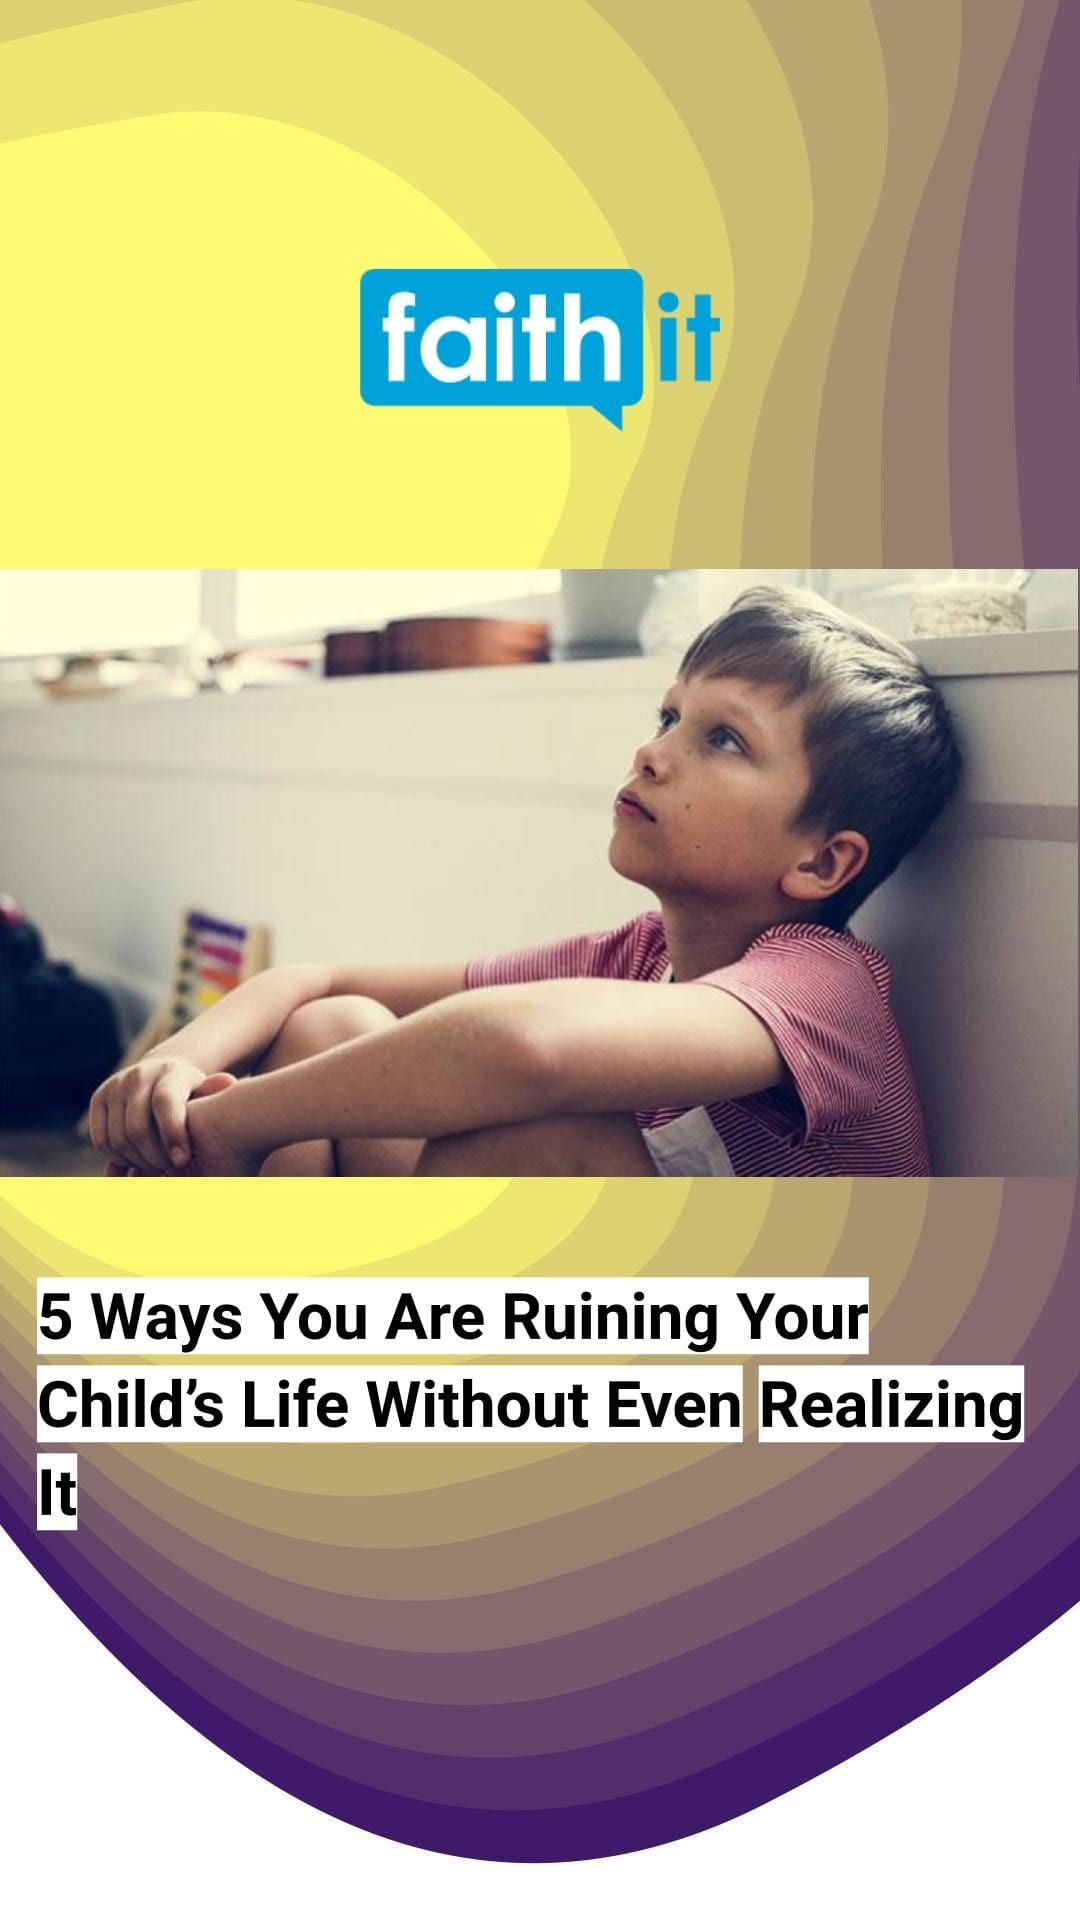 5 ways you are ruining your childs life without even